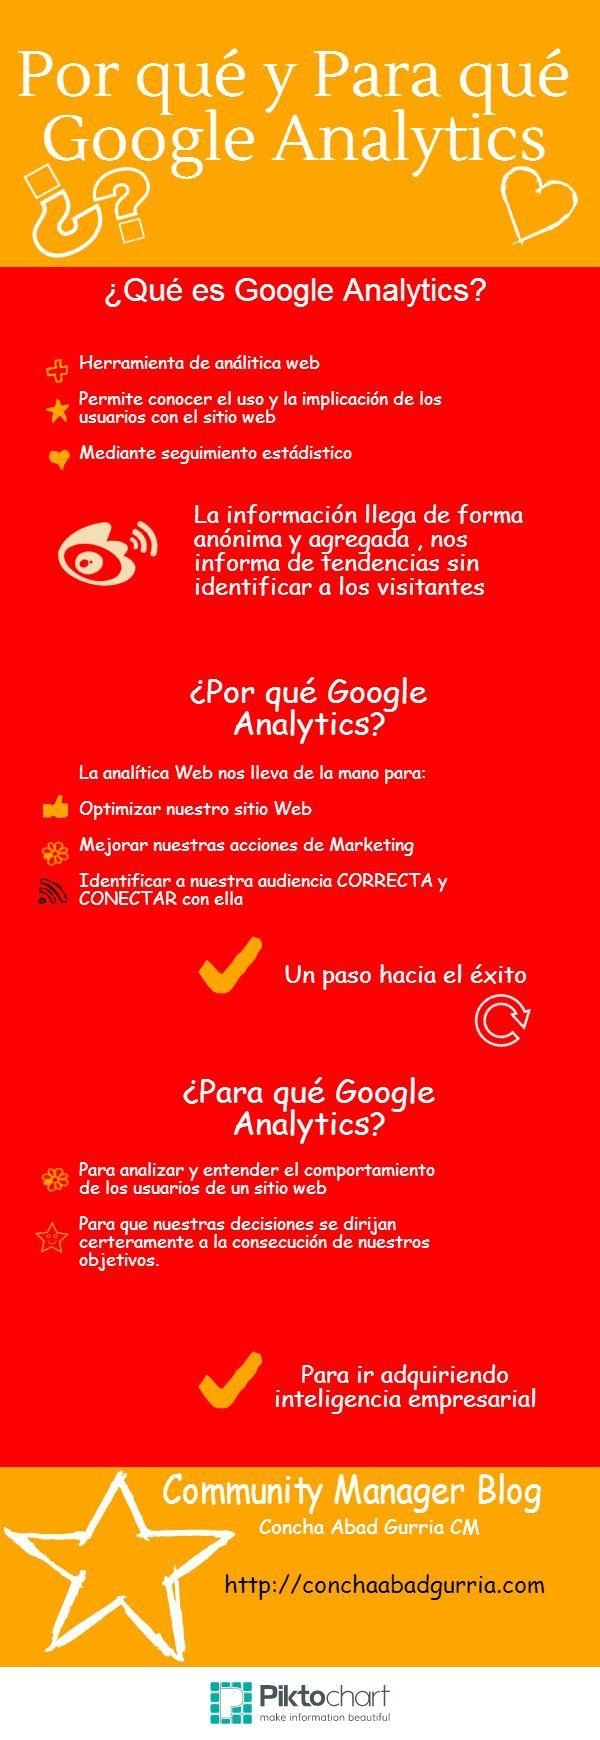 Por qué y para qué Google Analytics Fuente: http://conchaabadgurria.com/2014/01/22/google-analytics/  #infografia #infographic #marketing